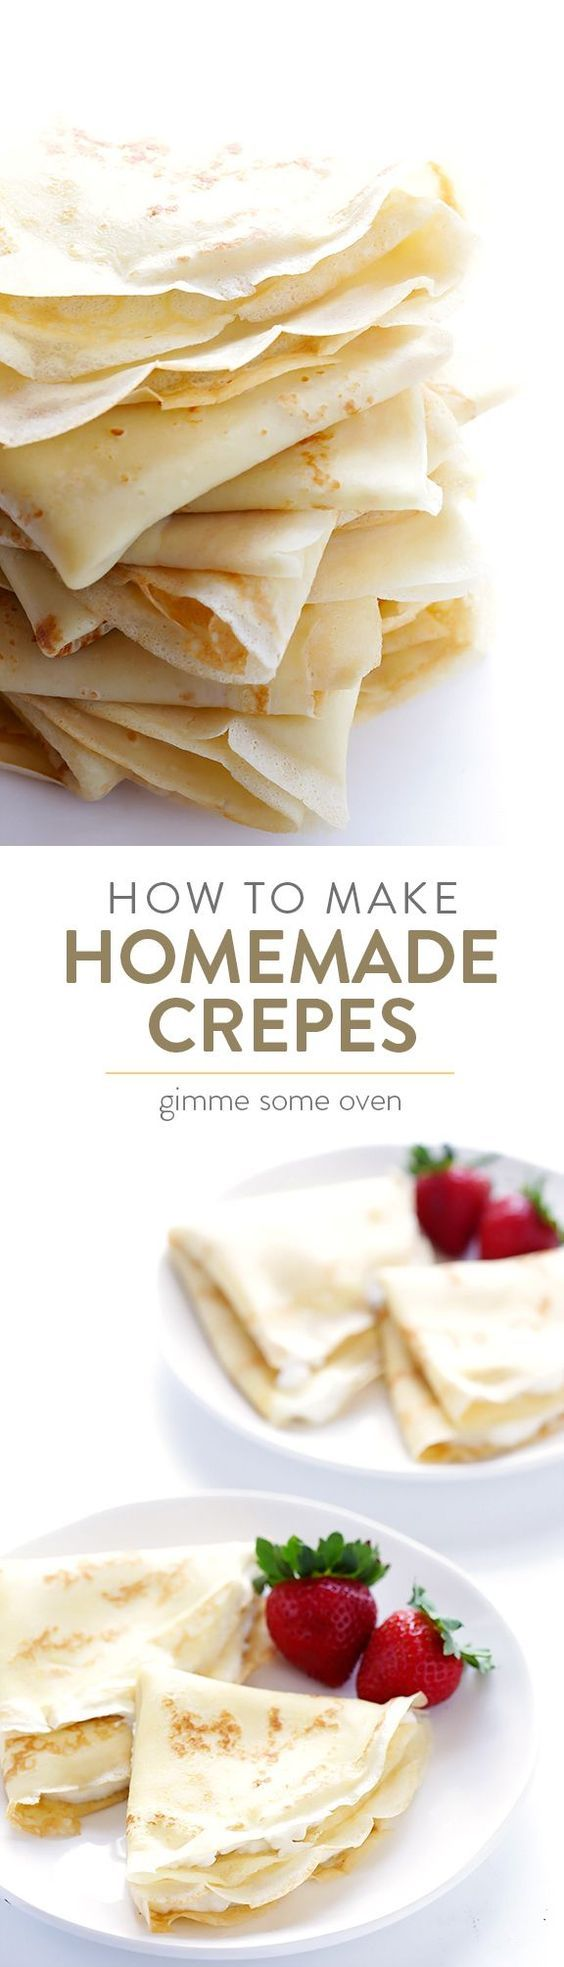 Learn how to make homemade crepes with this easy recipe and step-by-step tutorial!   gimmesomeoven.com